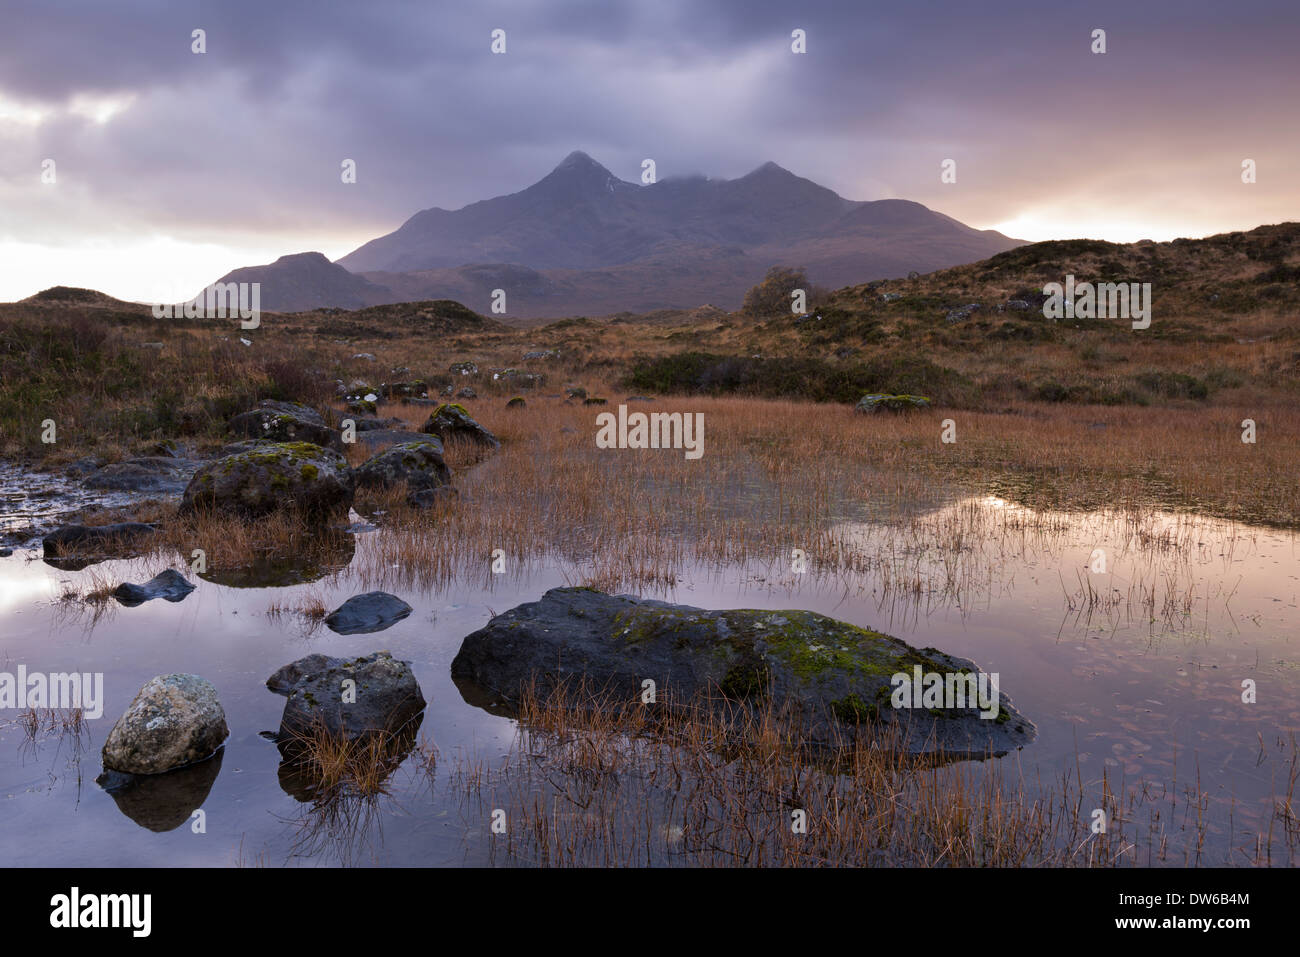 The Cuillin mountains from Glen Sligachan, Isle of Skye, Scotland. Winter (November) 2013. - Stock Image